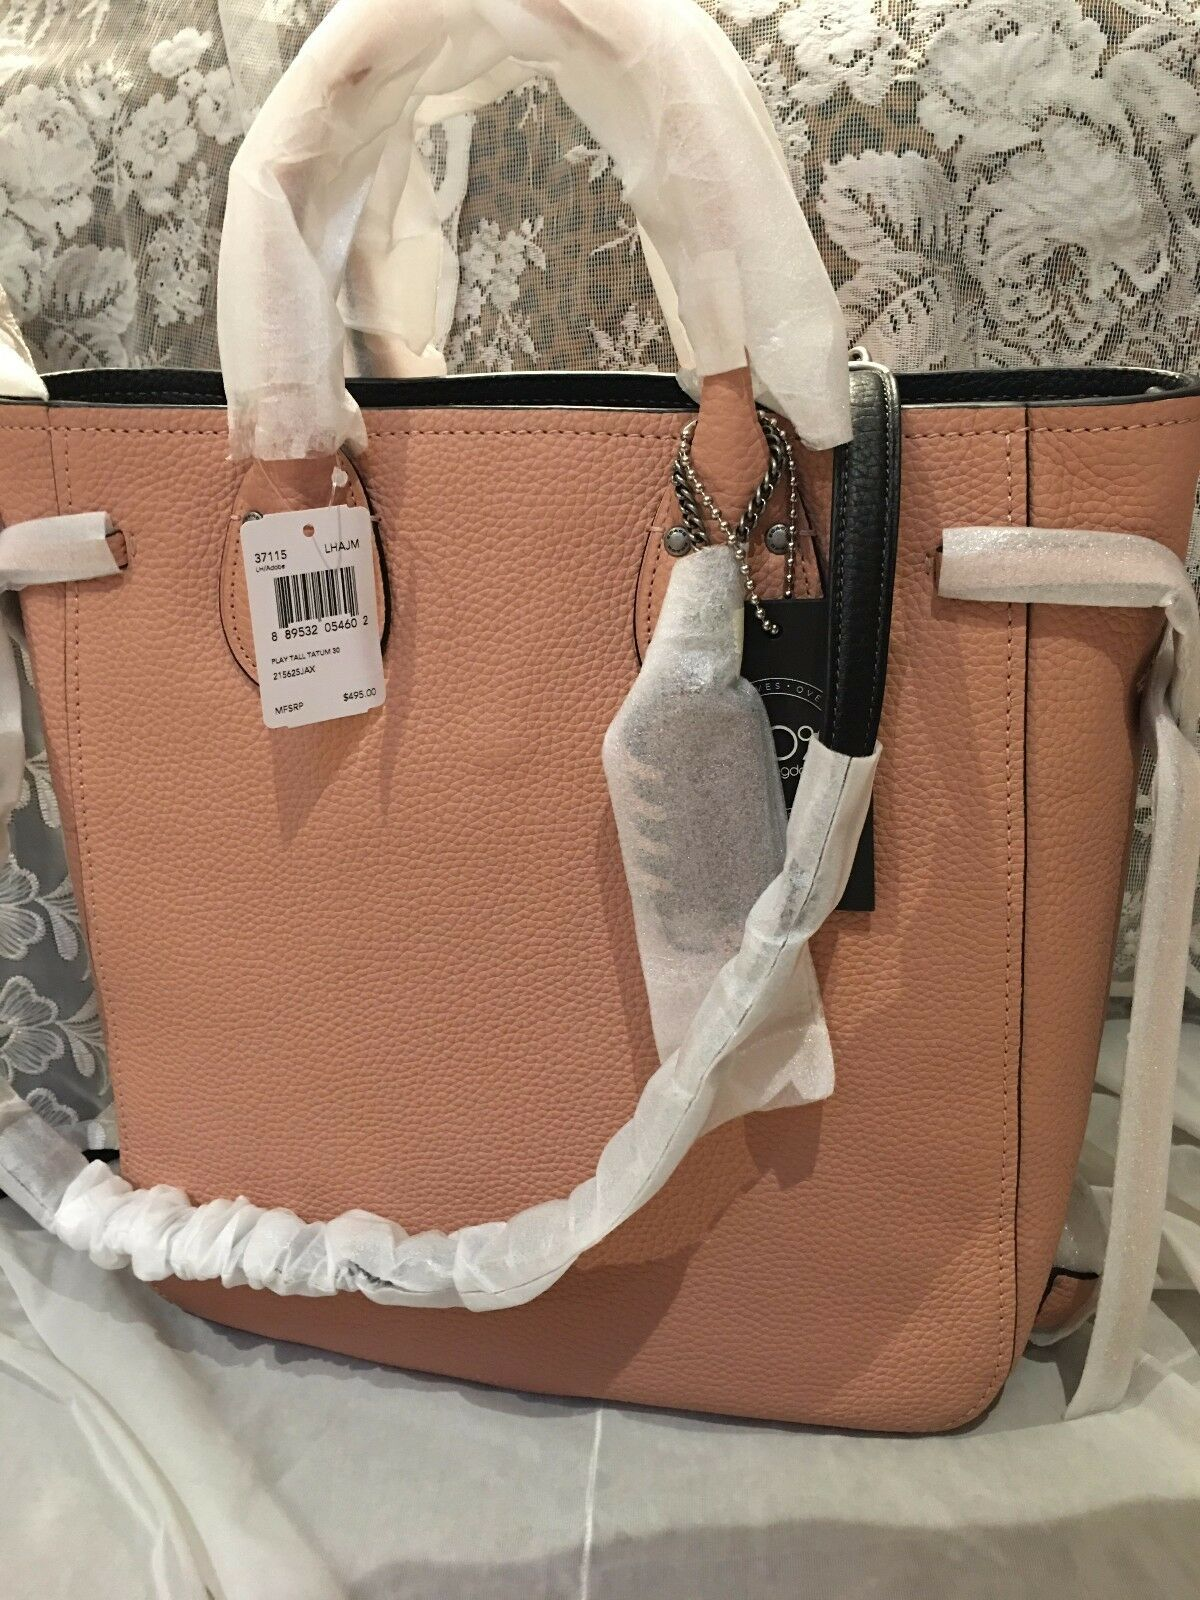 NWT Coach Play Tall Tatum 30 Tote Handbag Adobe Peach Pink Pebbled Leather 37115